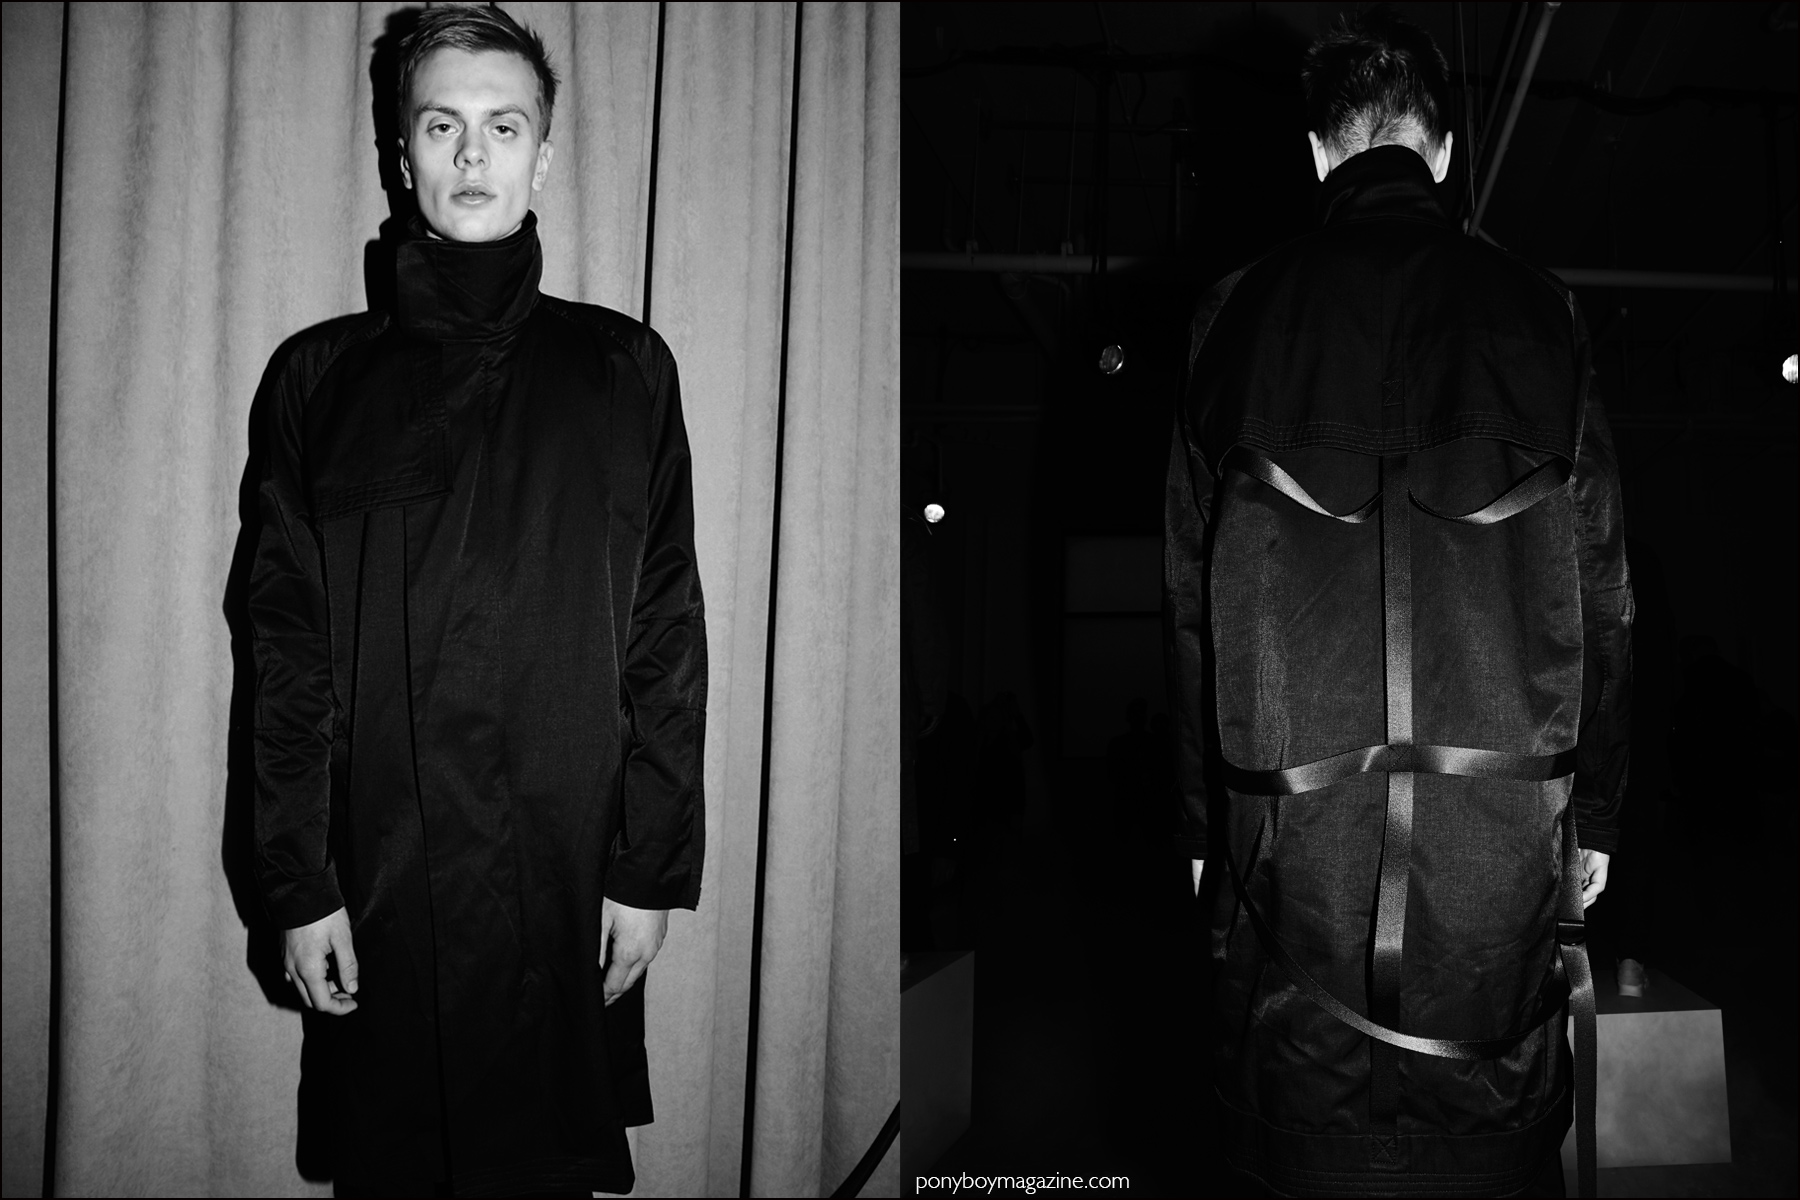 Model Ian Weglarz photographed backstage at Stampd F/W16 menswear show by Alexander Thompson for Ponyboy magazine NY.